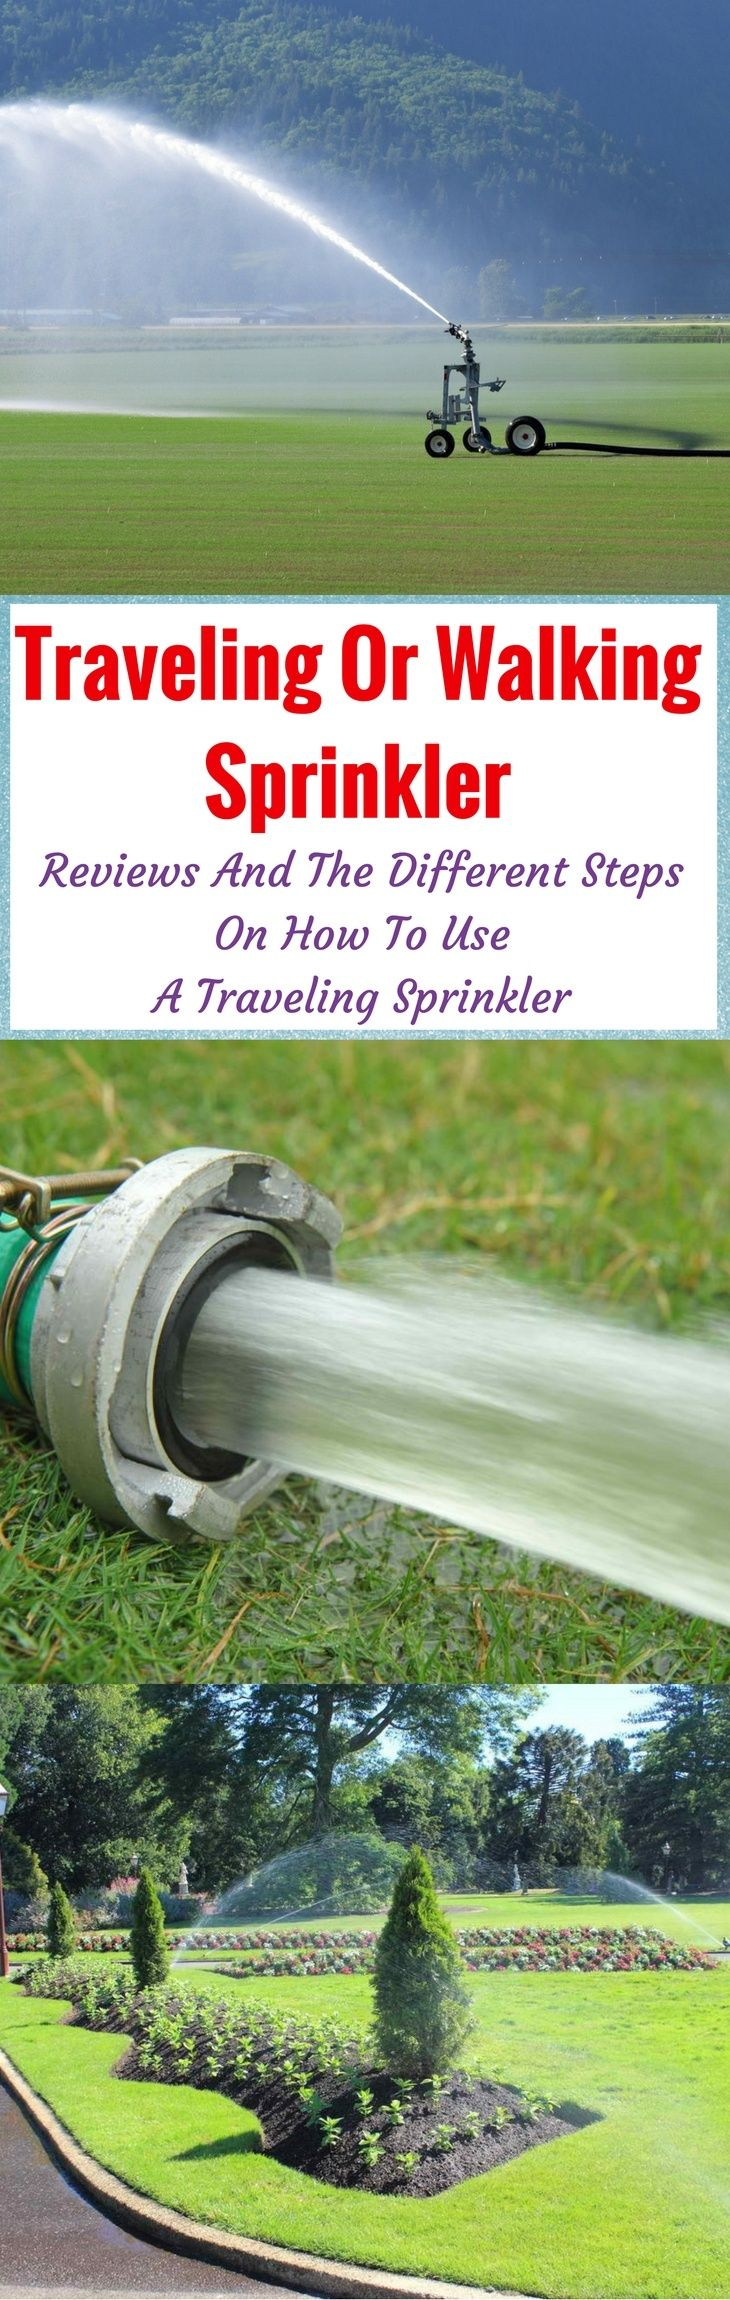 Best Traveling/Walking Sprinkler Reviews & The Different Steps on How to Use a Traveling Sprinkler